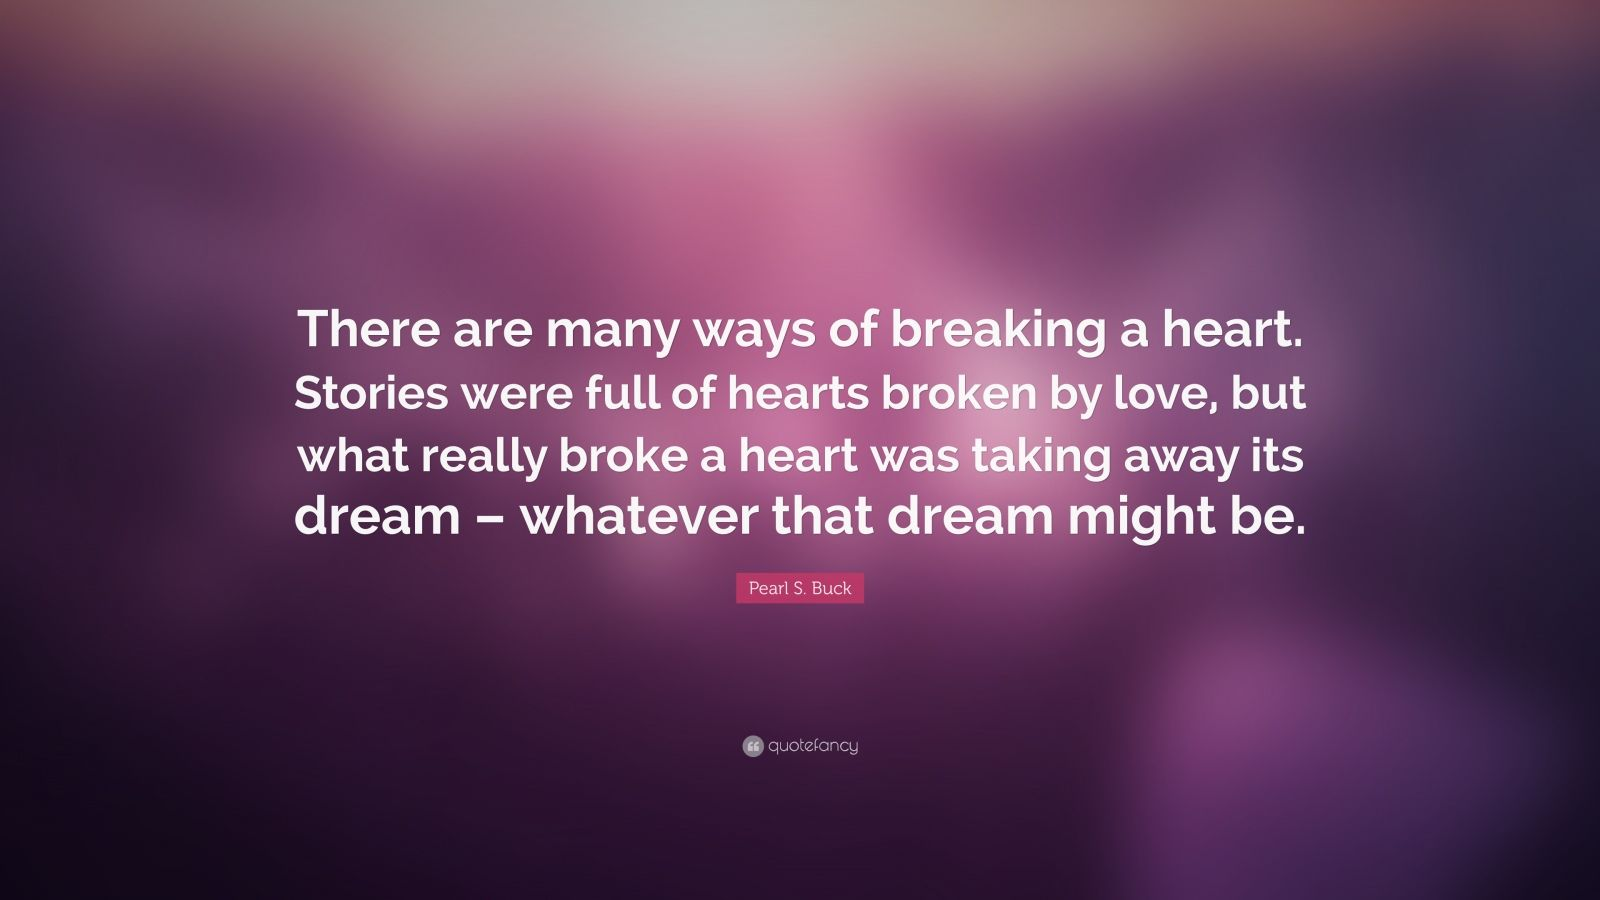 """Pearl S. Buck Quote: """"There are many ways of breaking a heart. Stories were full of hearts broken by love, but what really broke a heart was taking away its dream – whatever that dream might be."""""""